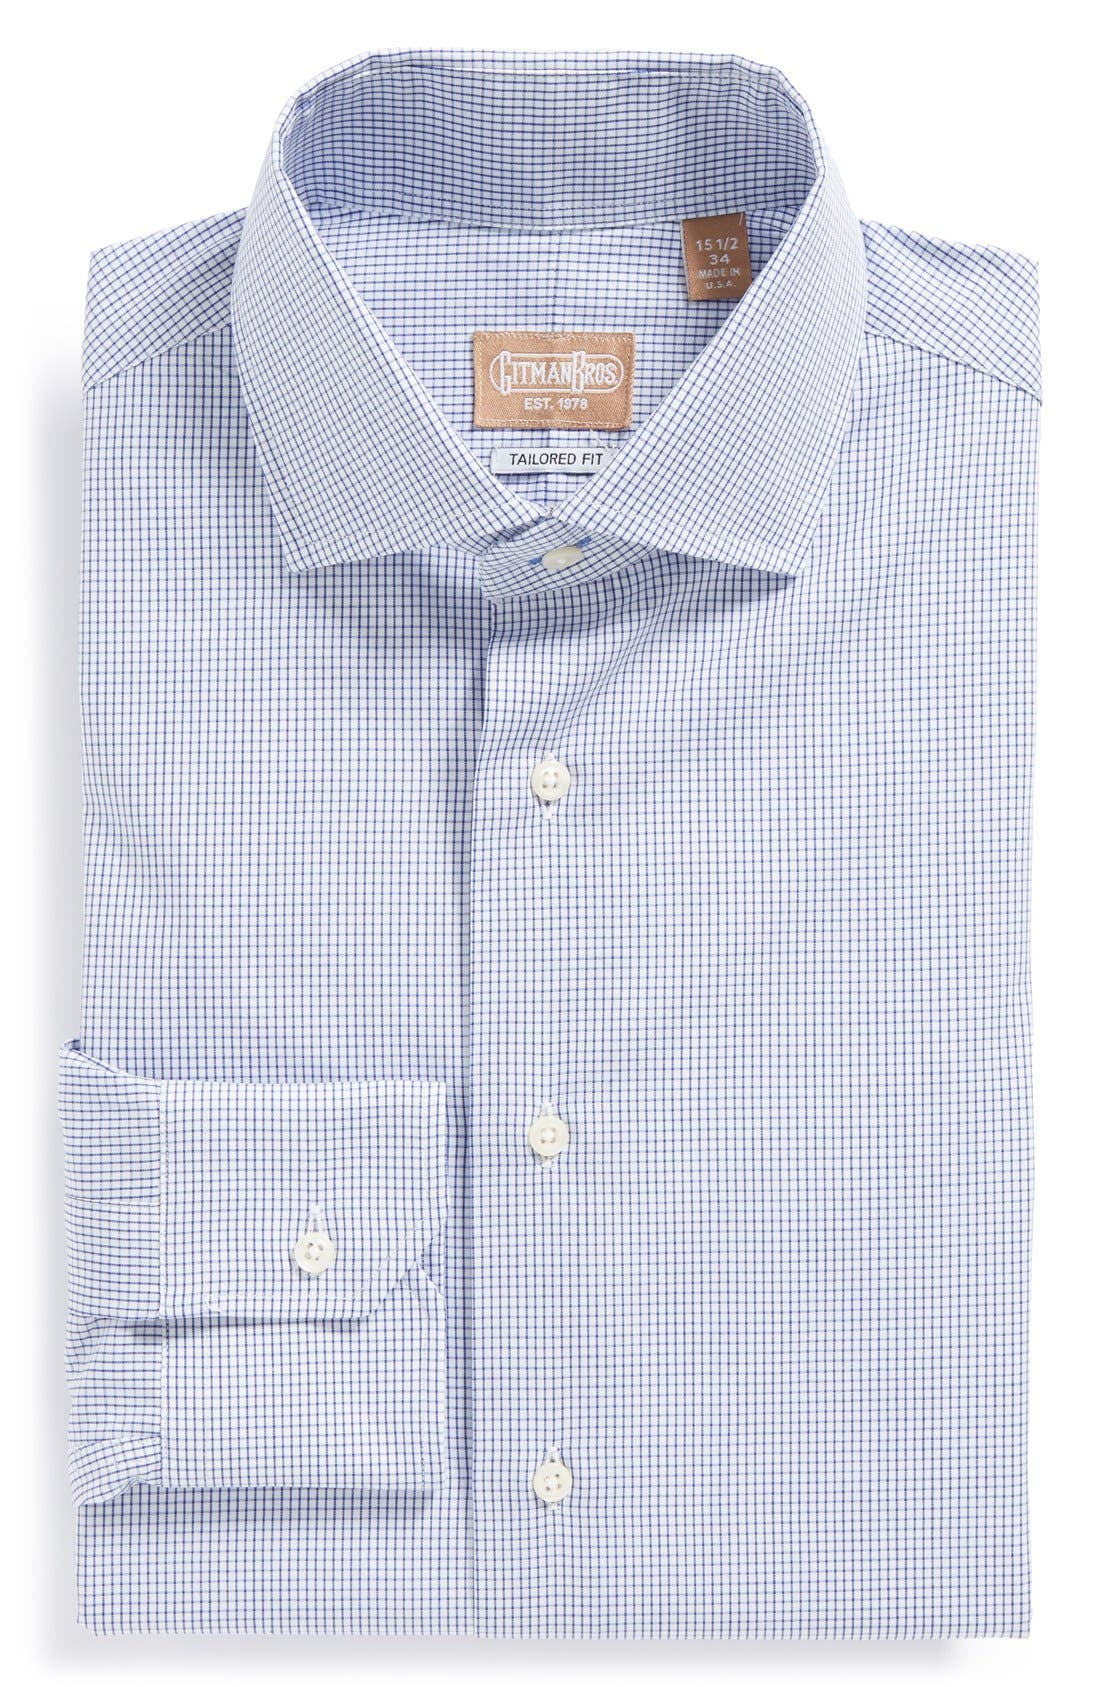 Main Image - Gitman Tailored Fit Gingham Dress Shirt